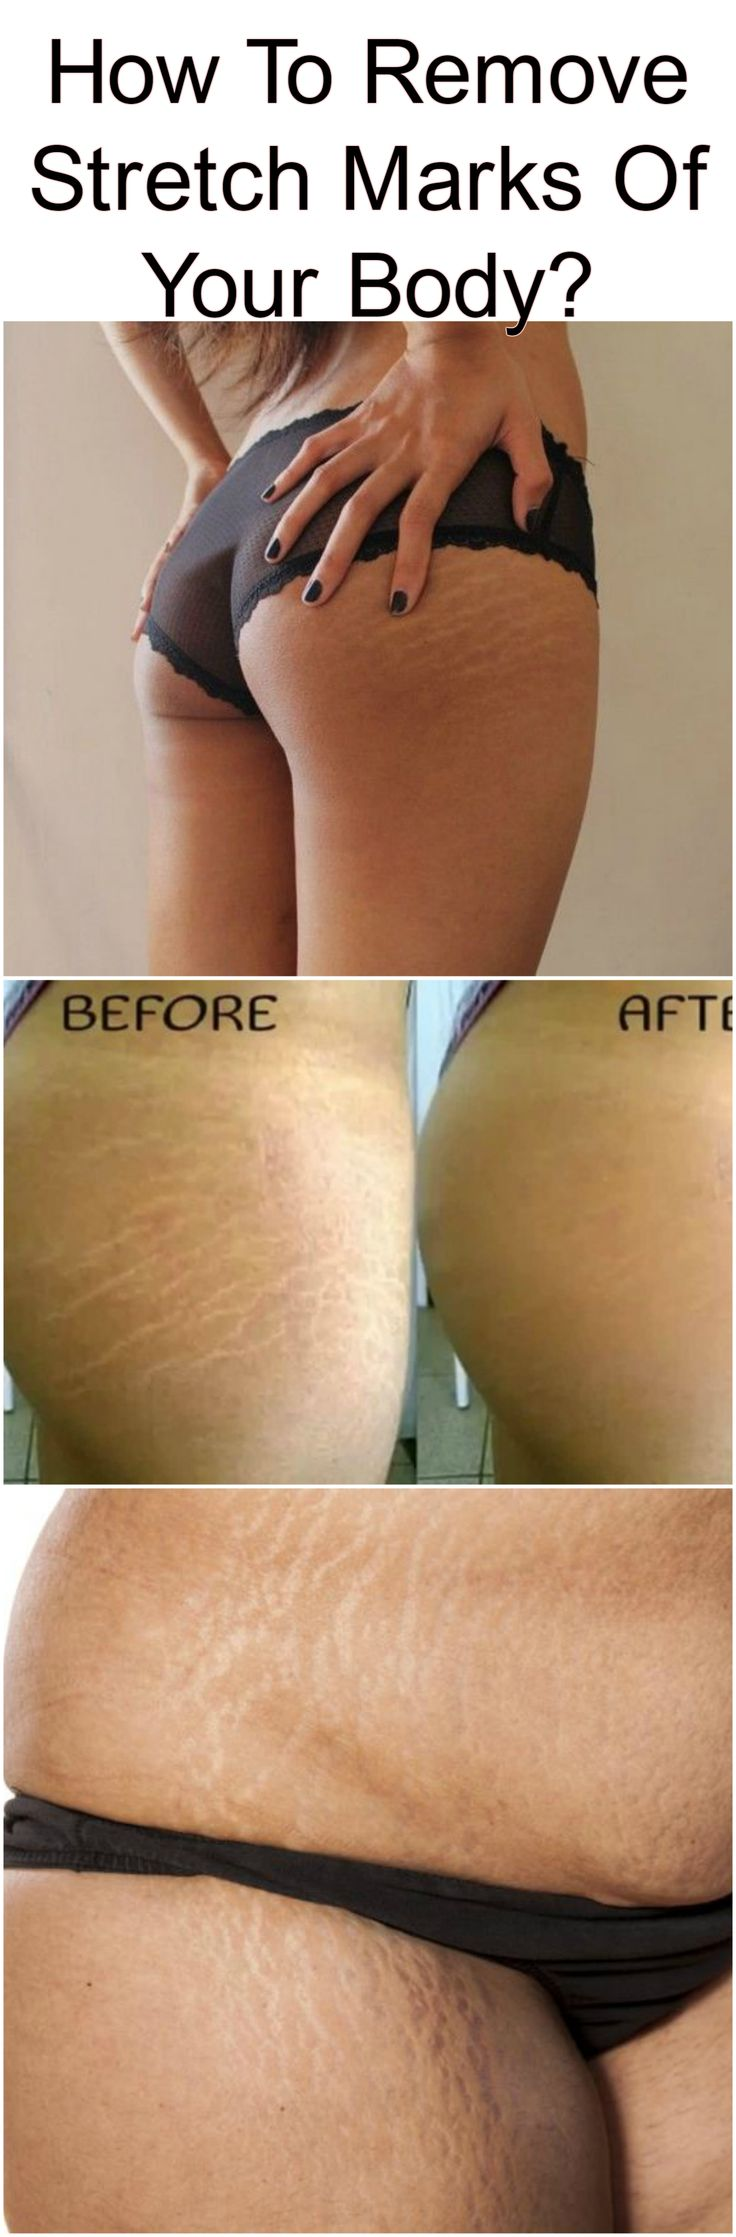 #remove #stretch #marks #body #fitness